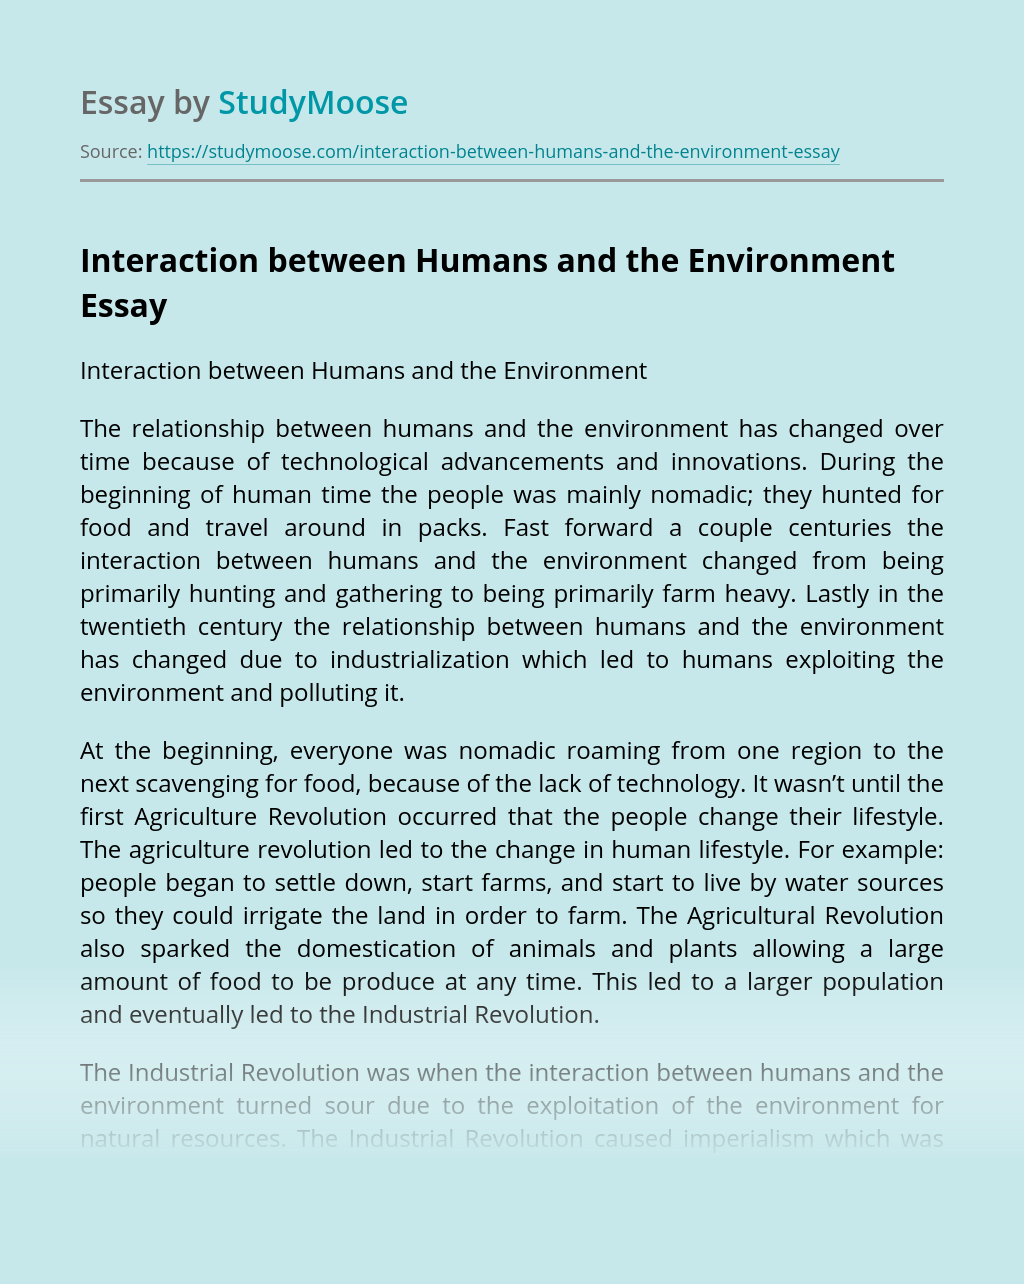 Interaction between Humans and the Environment